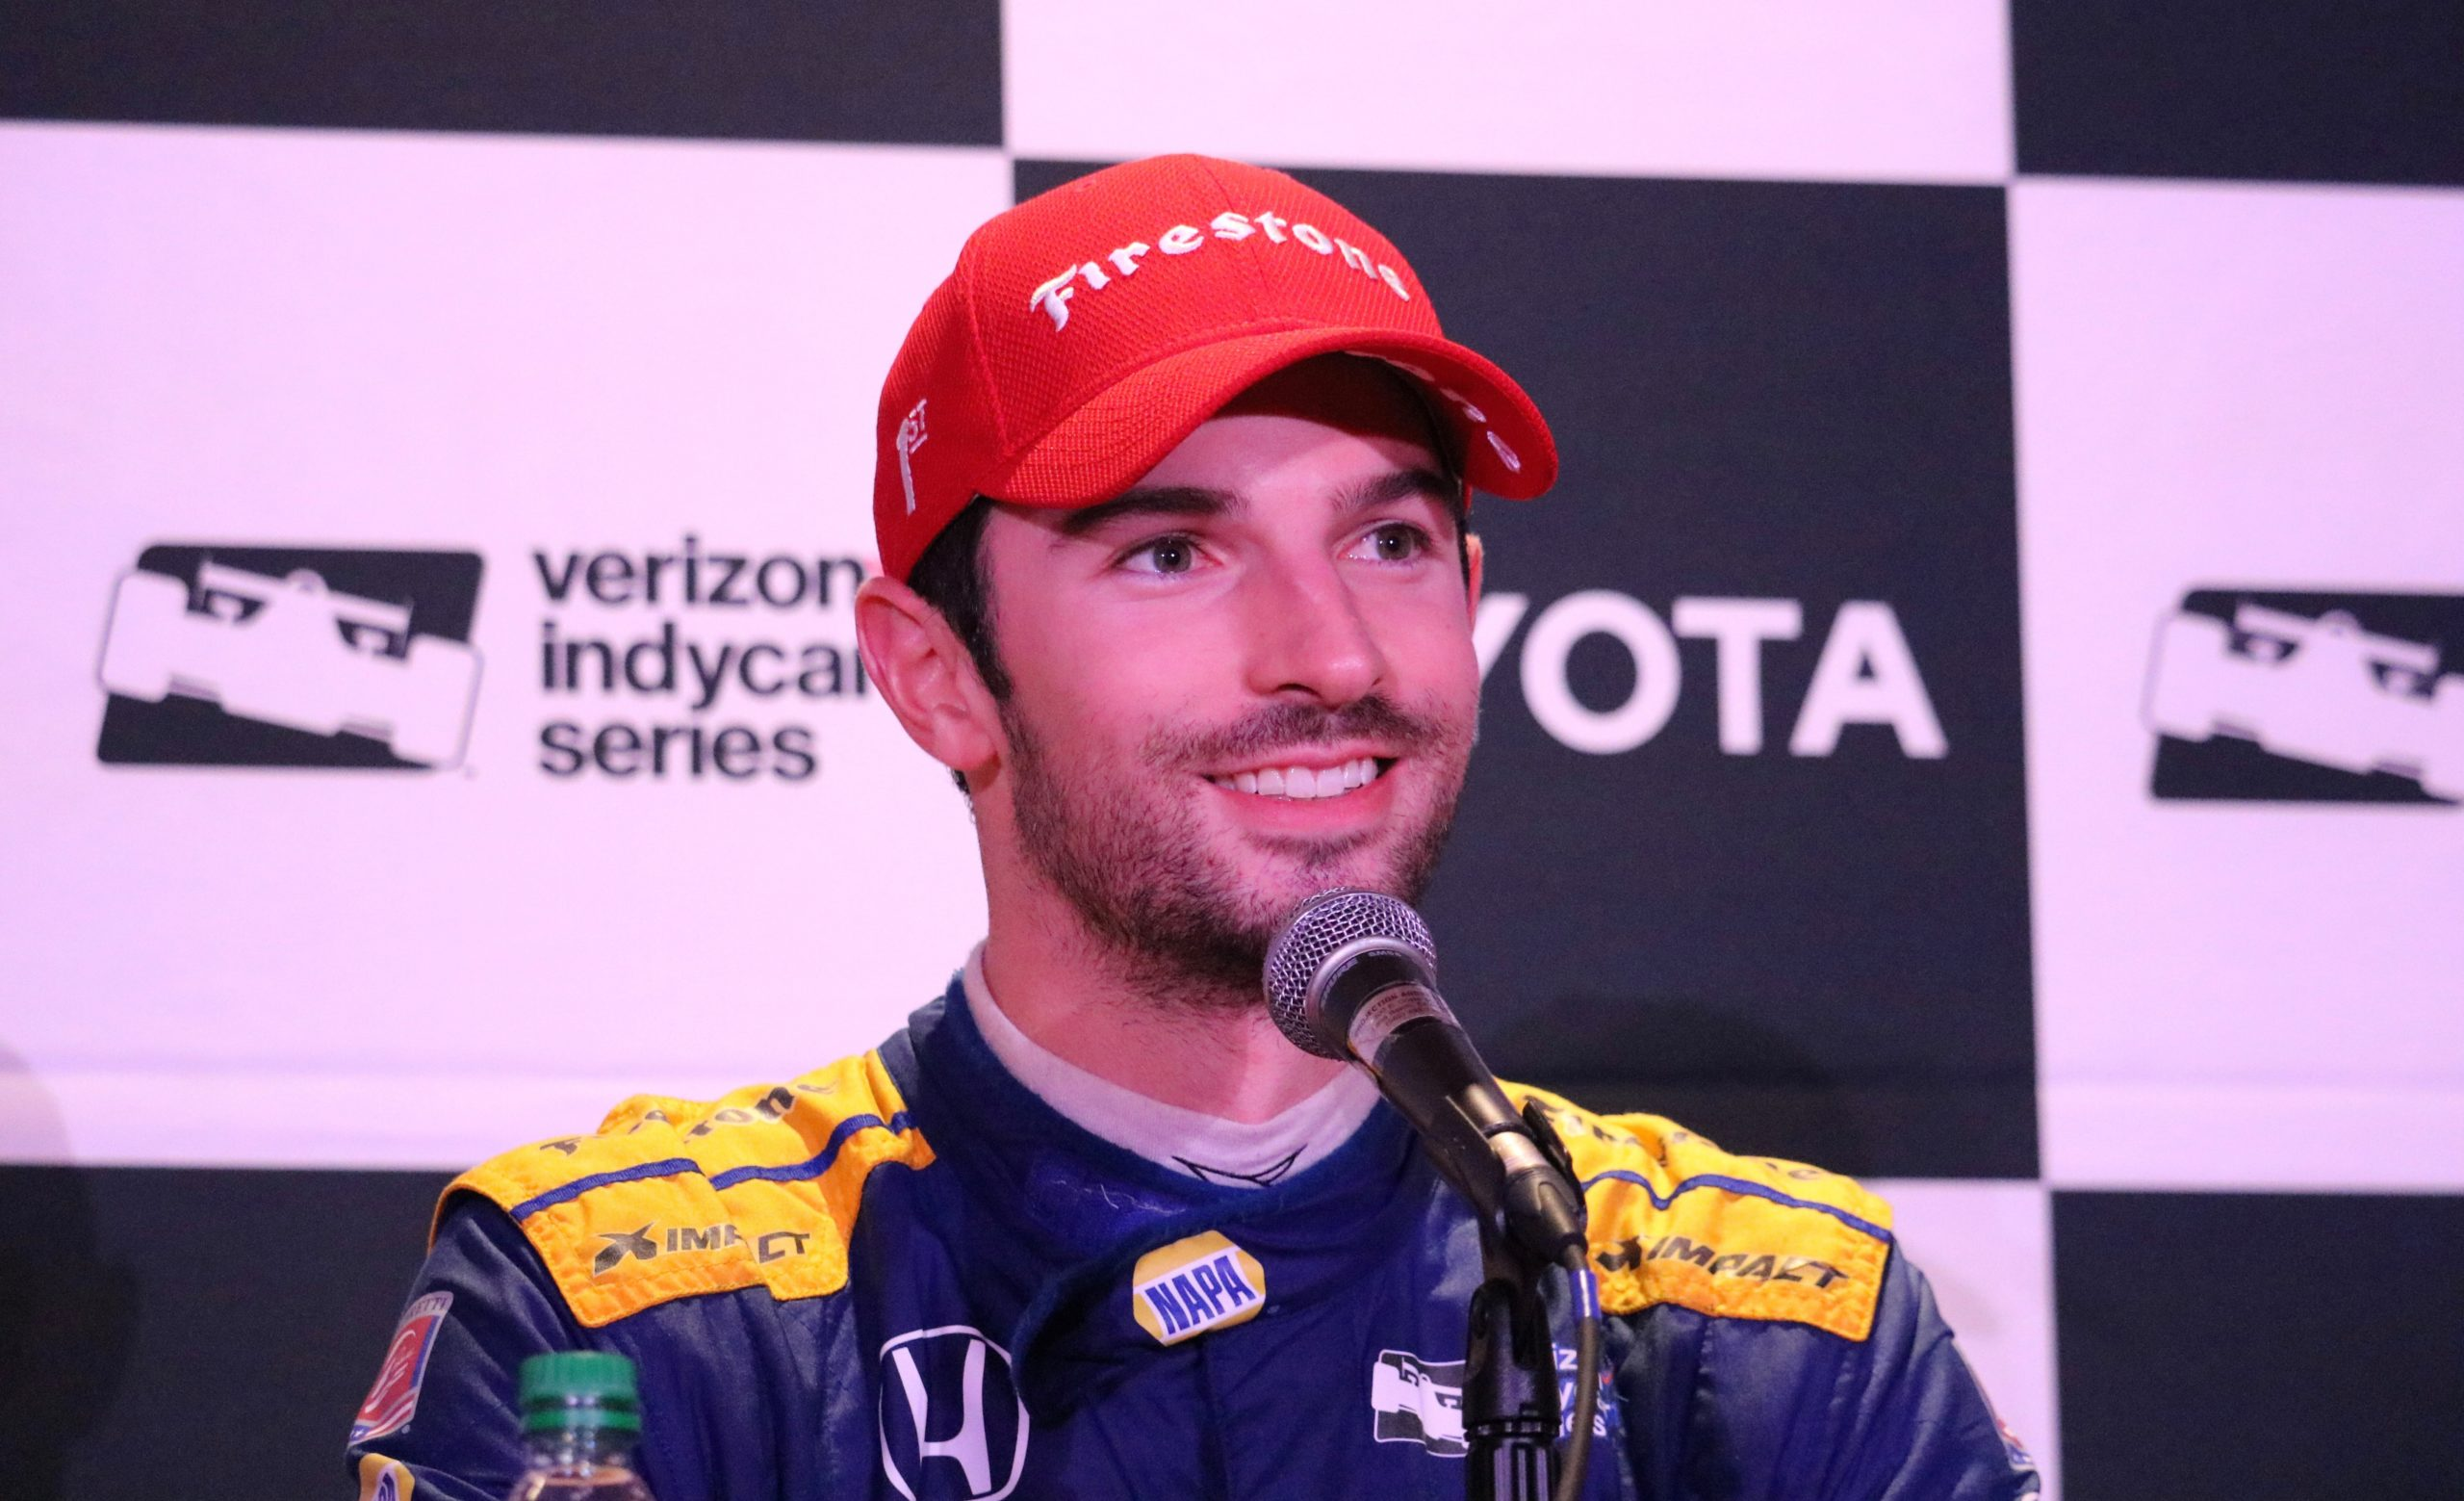 IndyCar's Alexander Rossi Opens Up About His Racing Journey